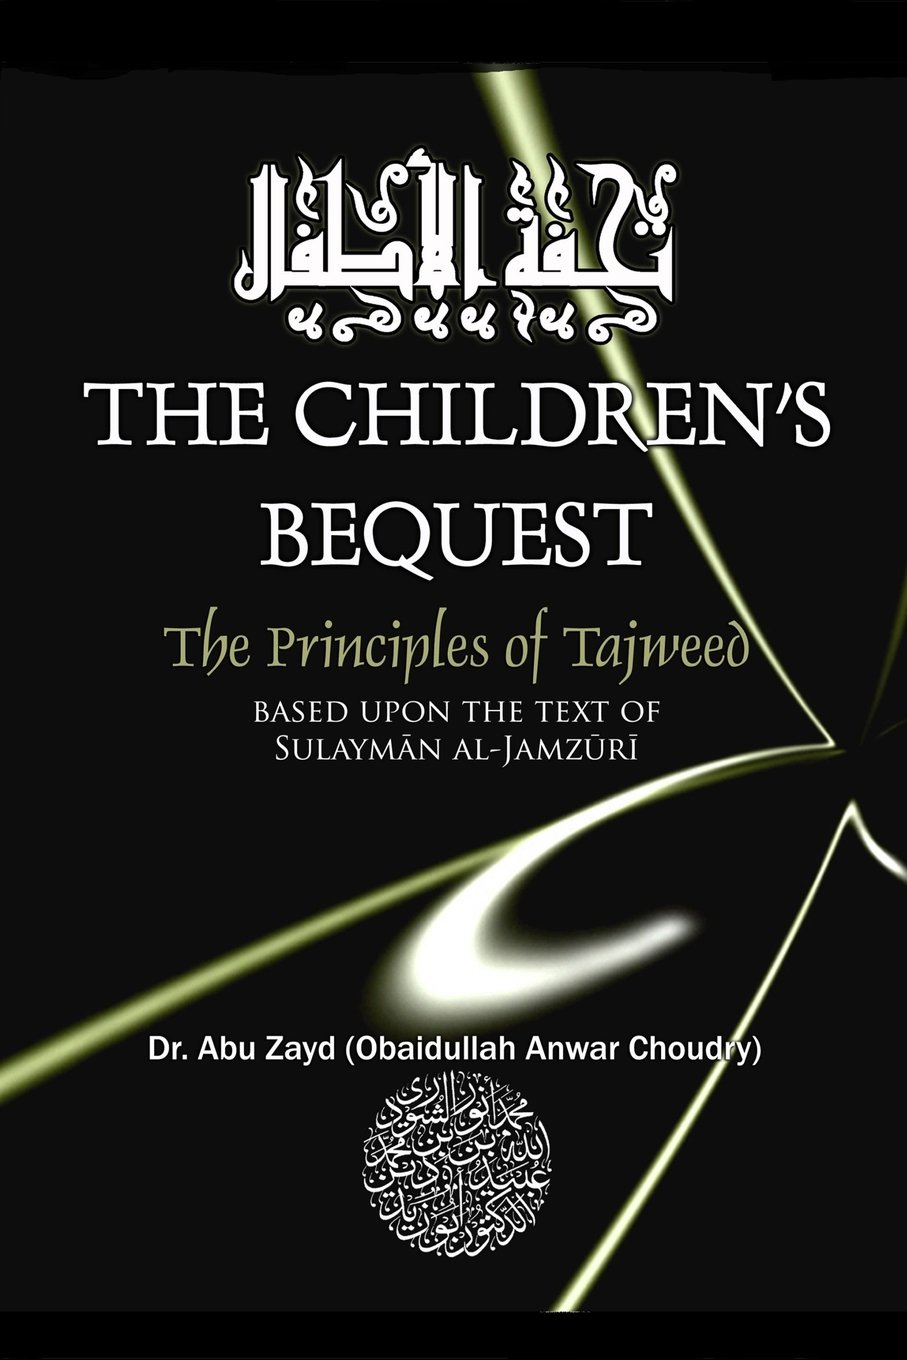 CHILDRENS BEQUEST The Art of Tajweed 3rd edition Softcover pdf